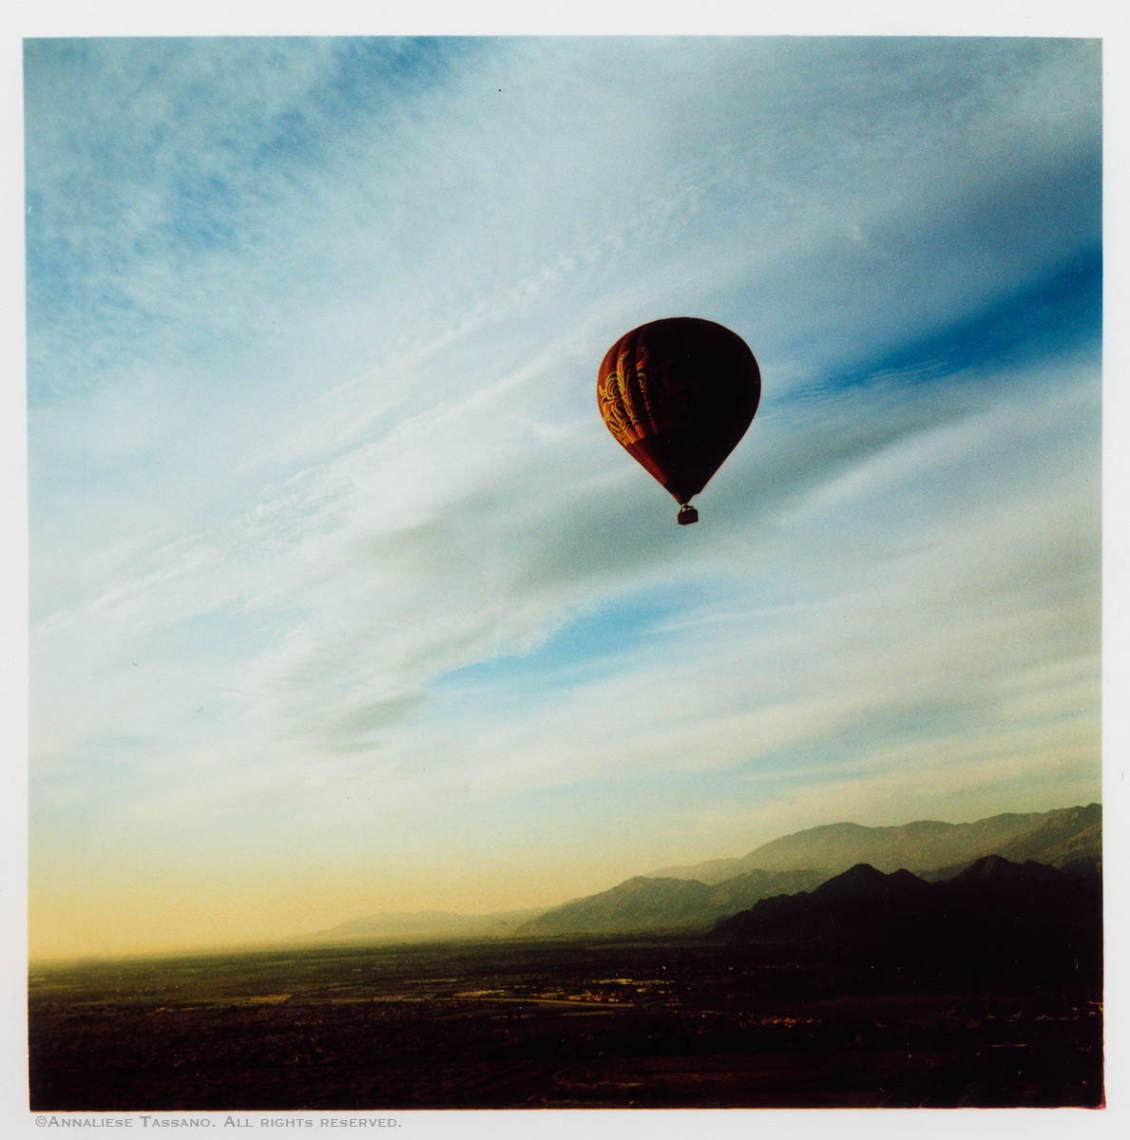 A cross process image of a balloon floating voer the desert valley of Palm Springs, California.